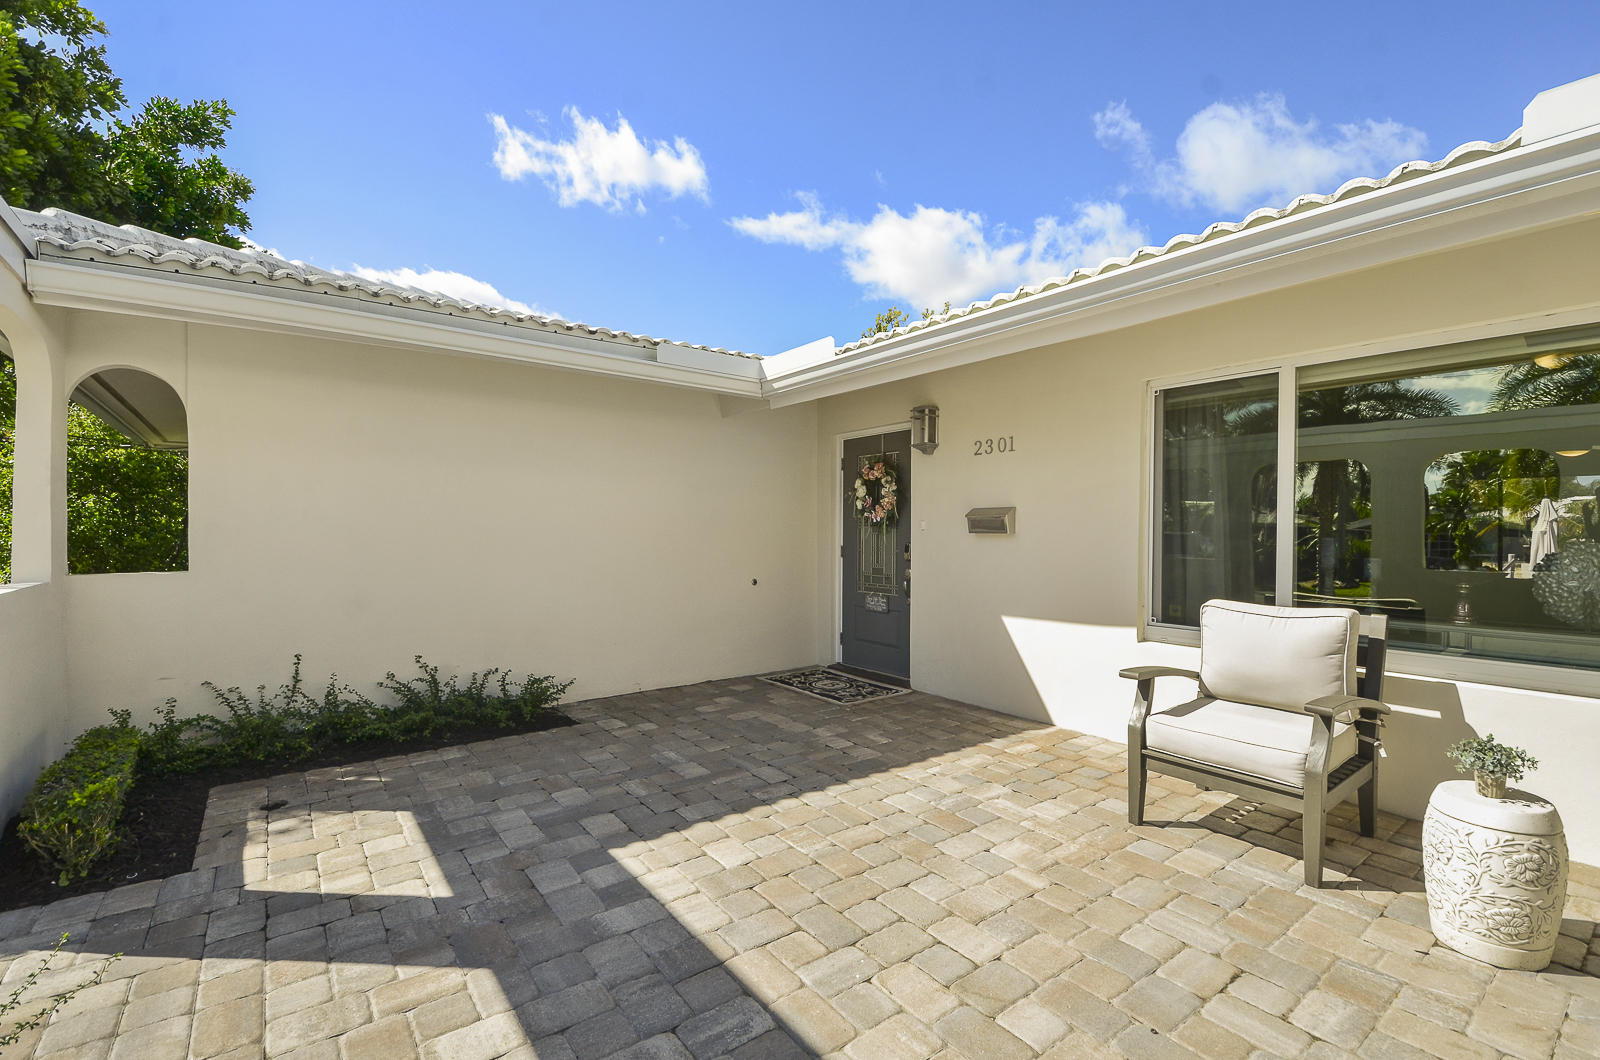 EDGEWATER ESTATES WILTON MANORS